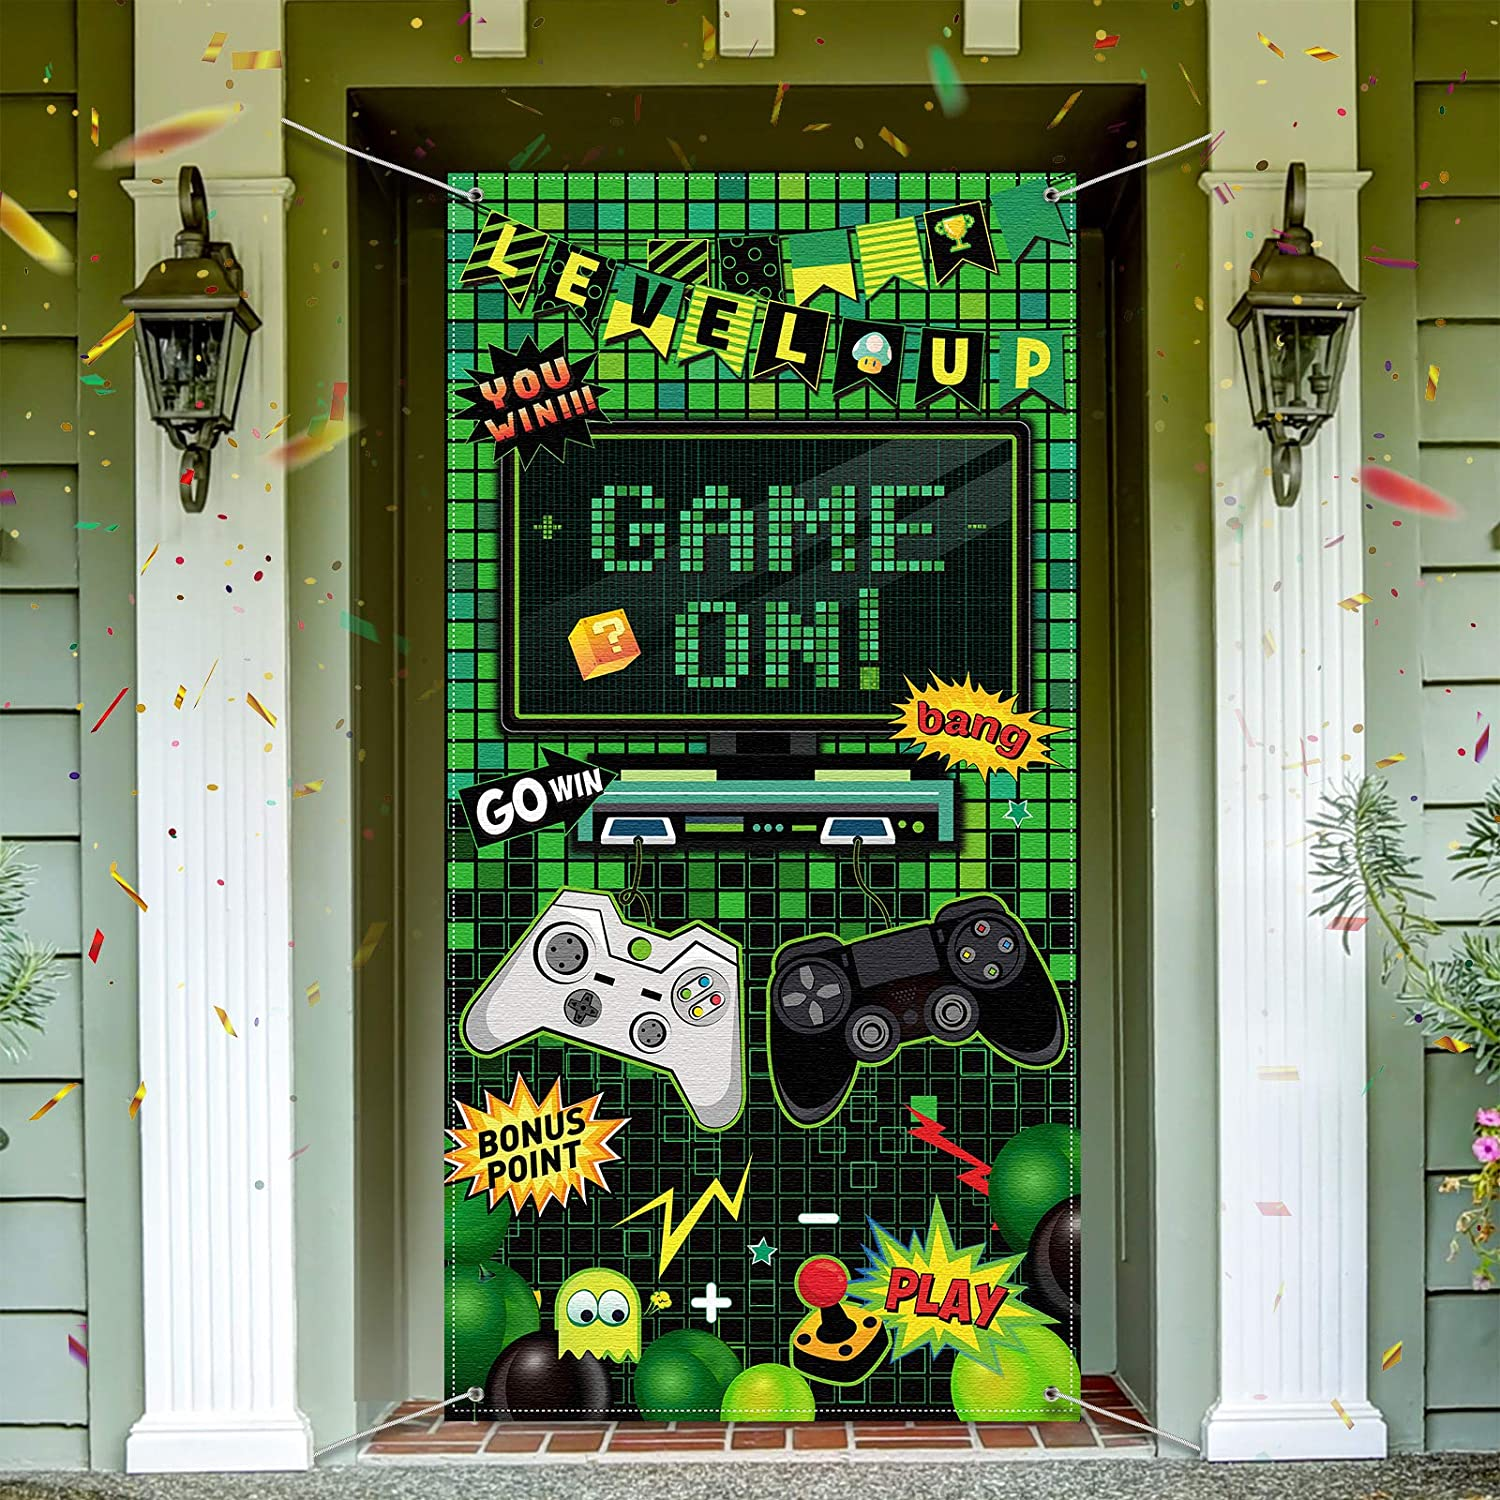 Video Game Party Decoration Video Gaming Photo Door Backdrop Game On Boys Birthday Photo Banner Gamer Room Decor for Game Fans Video Gamer Party Decoration Supplies, 6 x 3 Feet